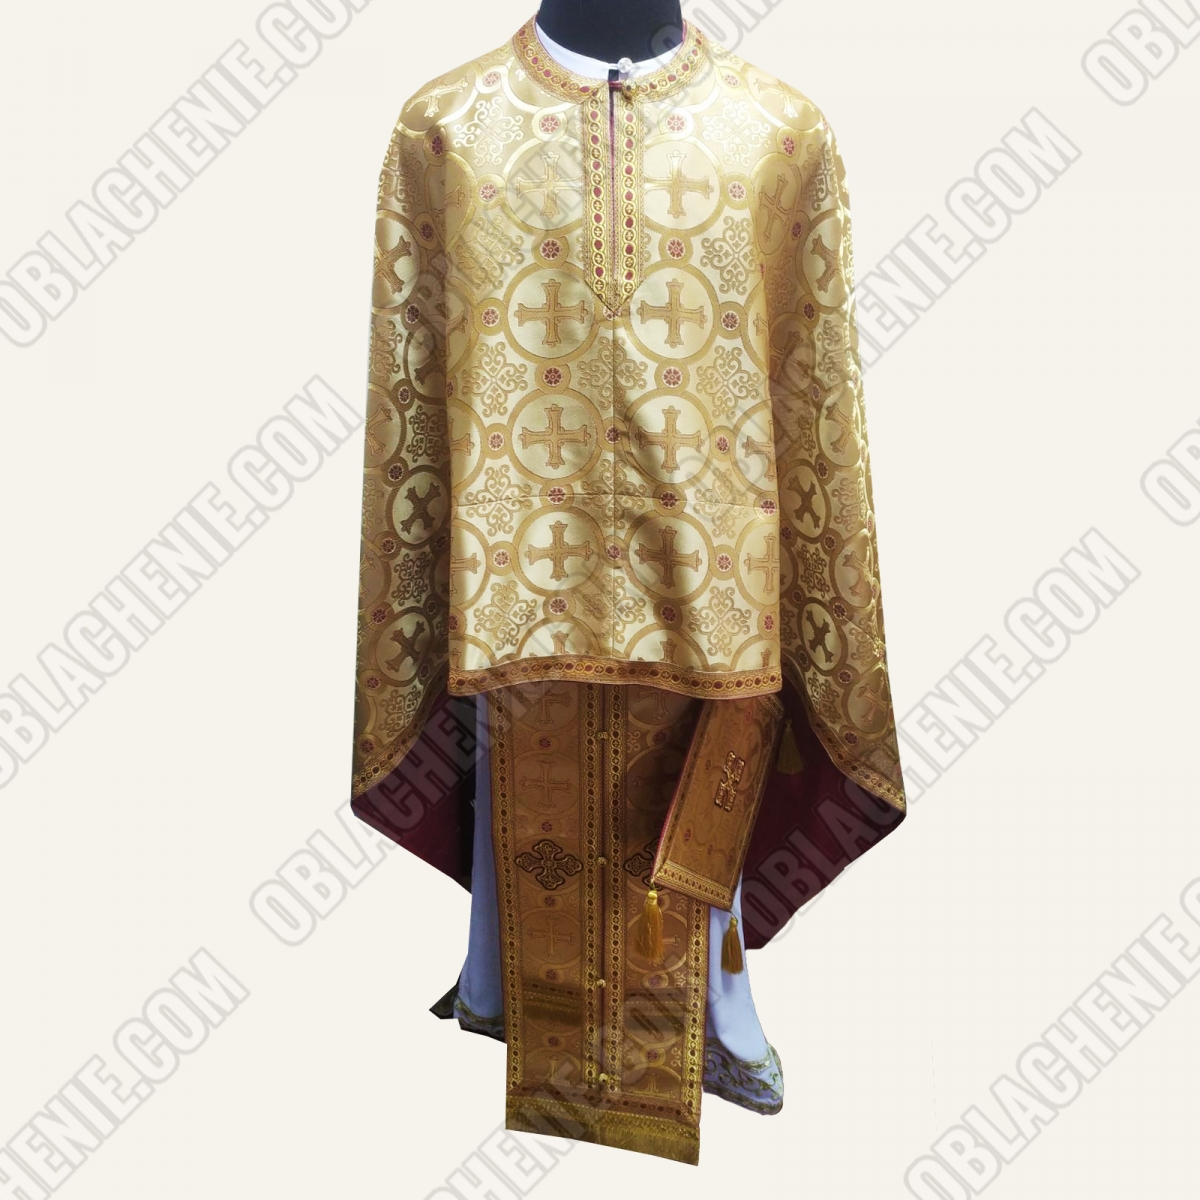 PRIEST'S VESTMENTS 11257